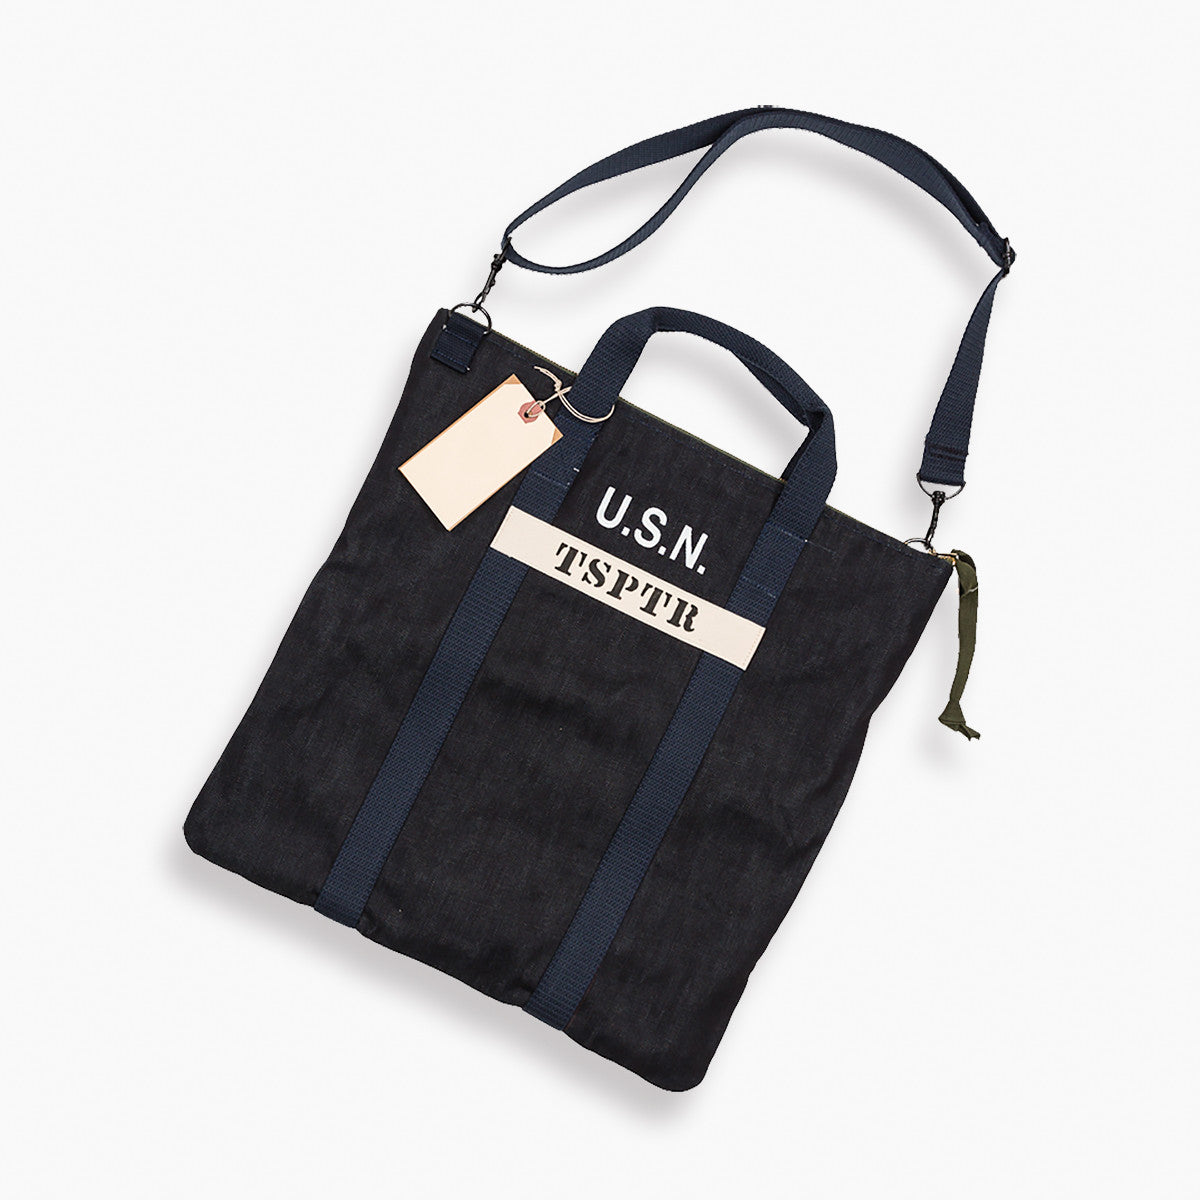 Denim US Navy Bag